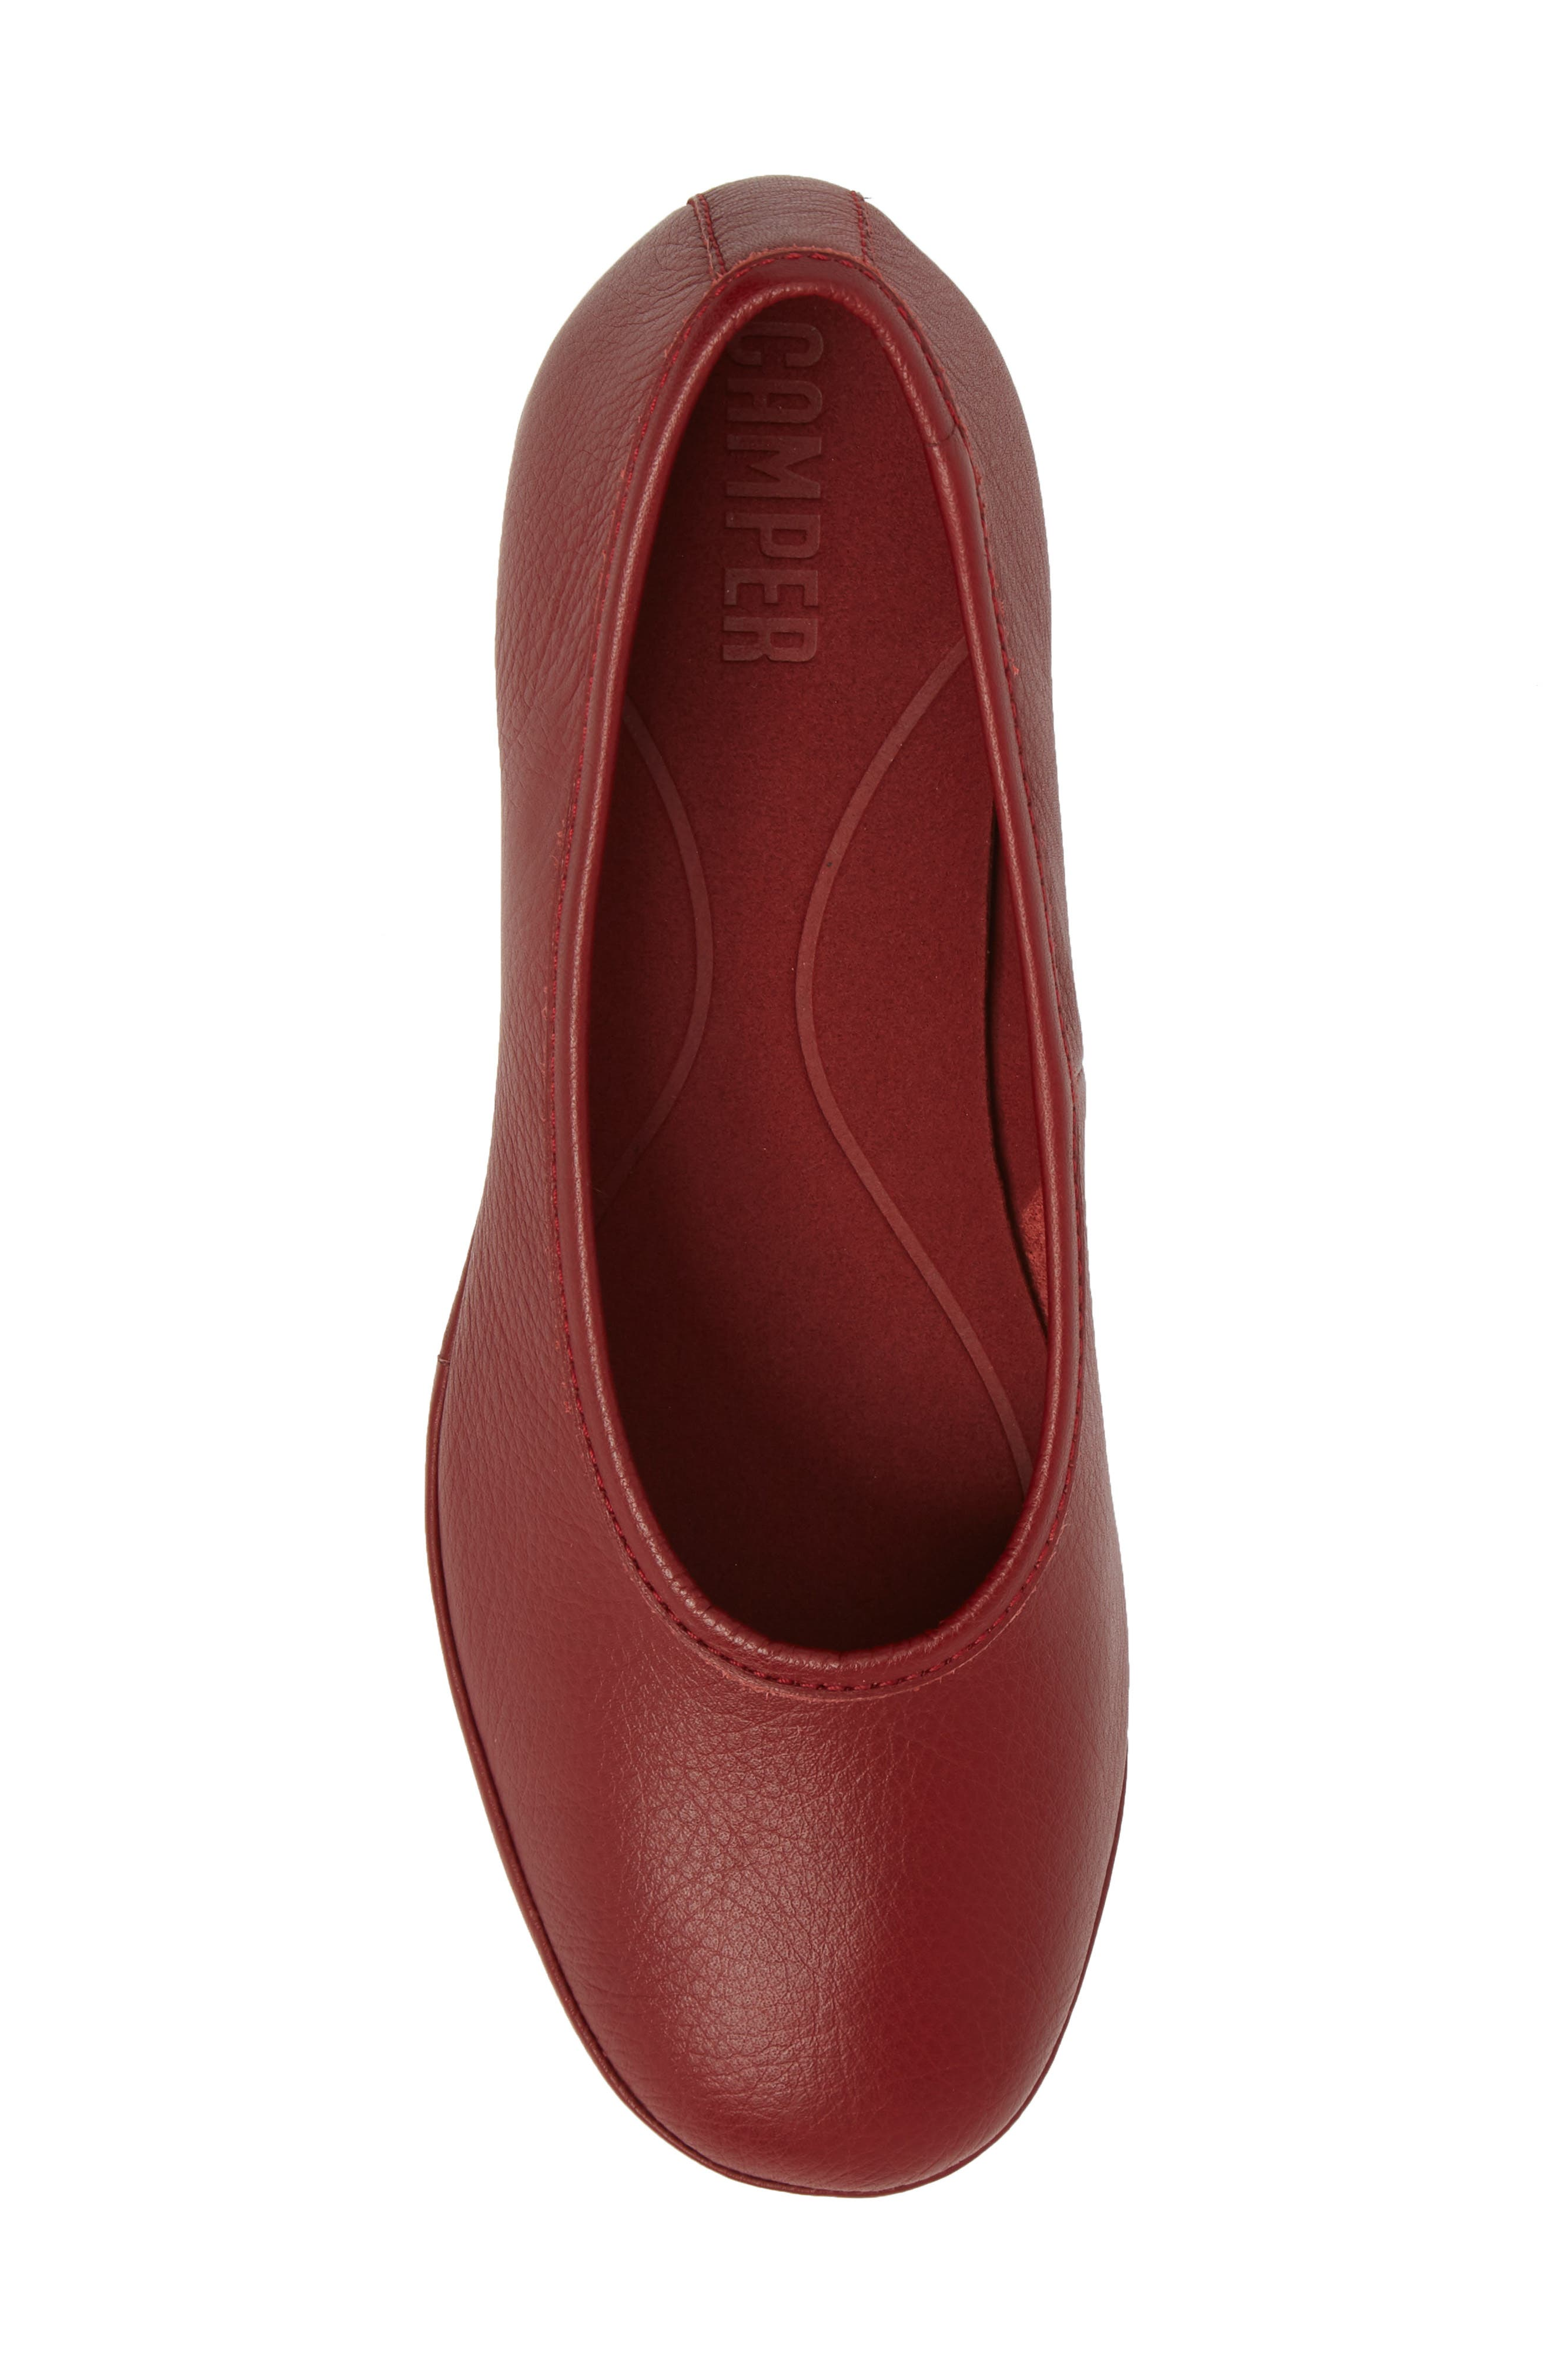 Alright Cone Heel Pump,                             Alternate thumbnail 5, color,                             DARK RED LEATEHR